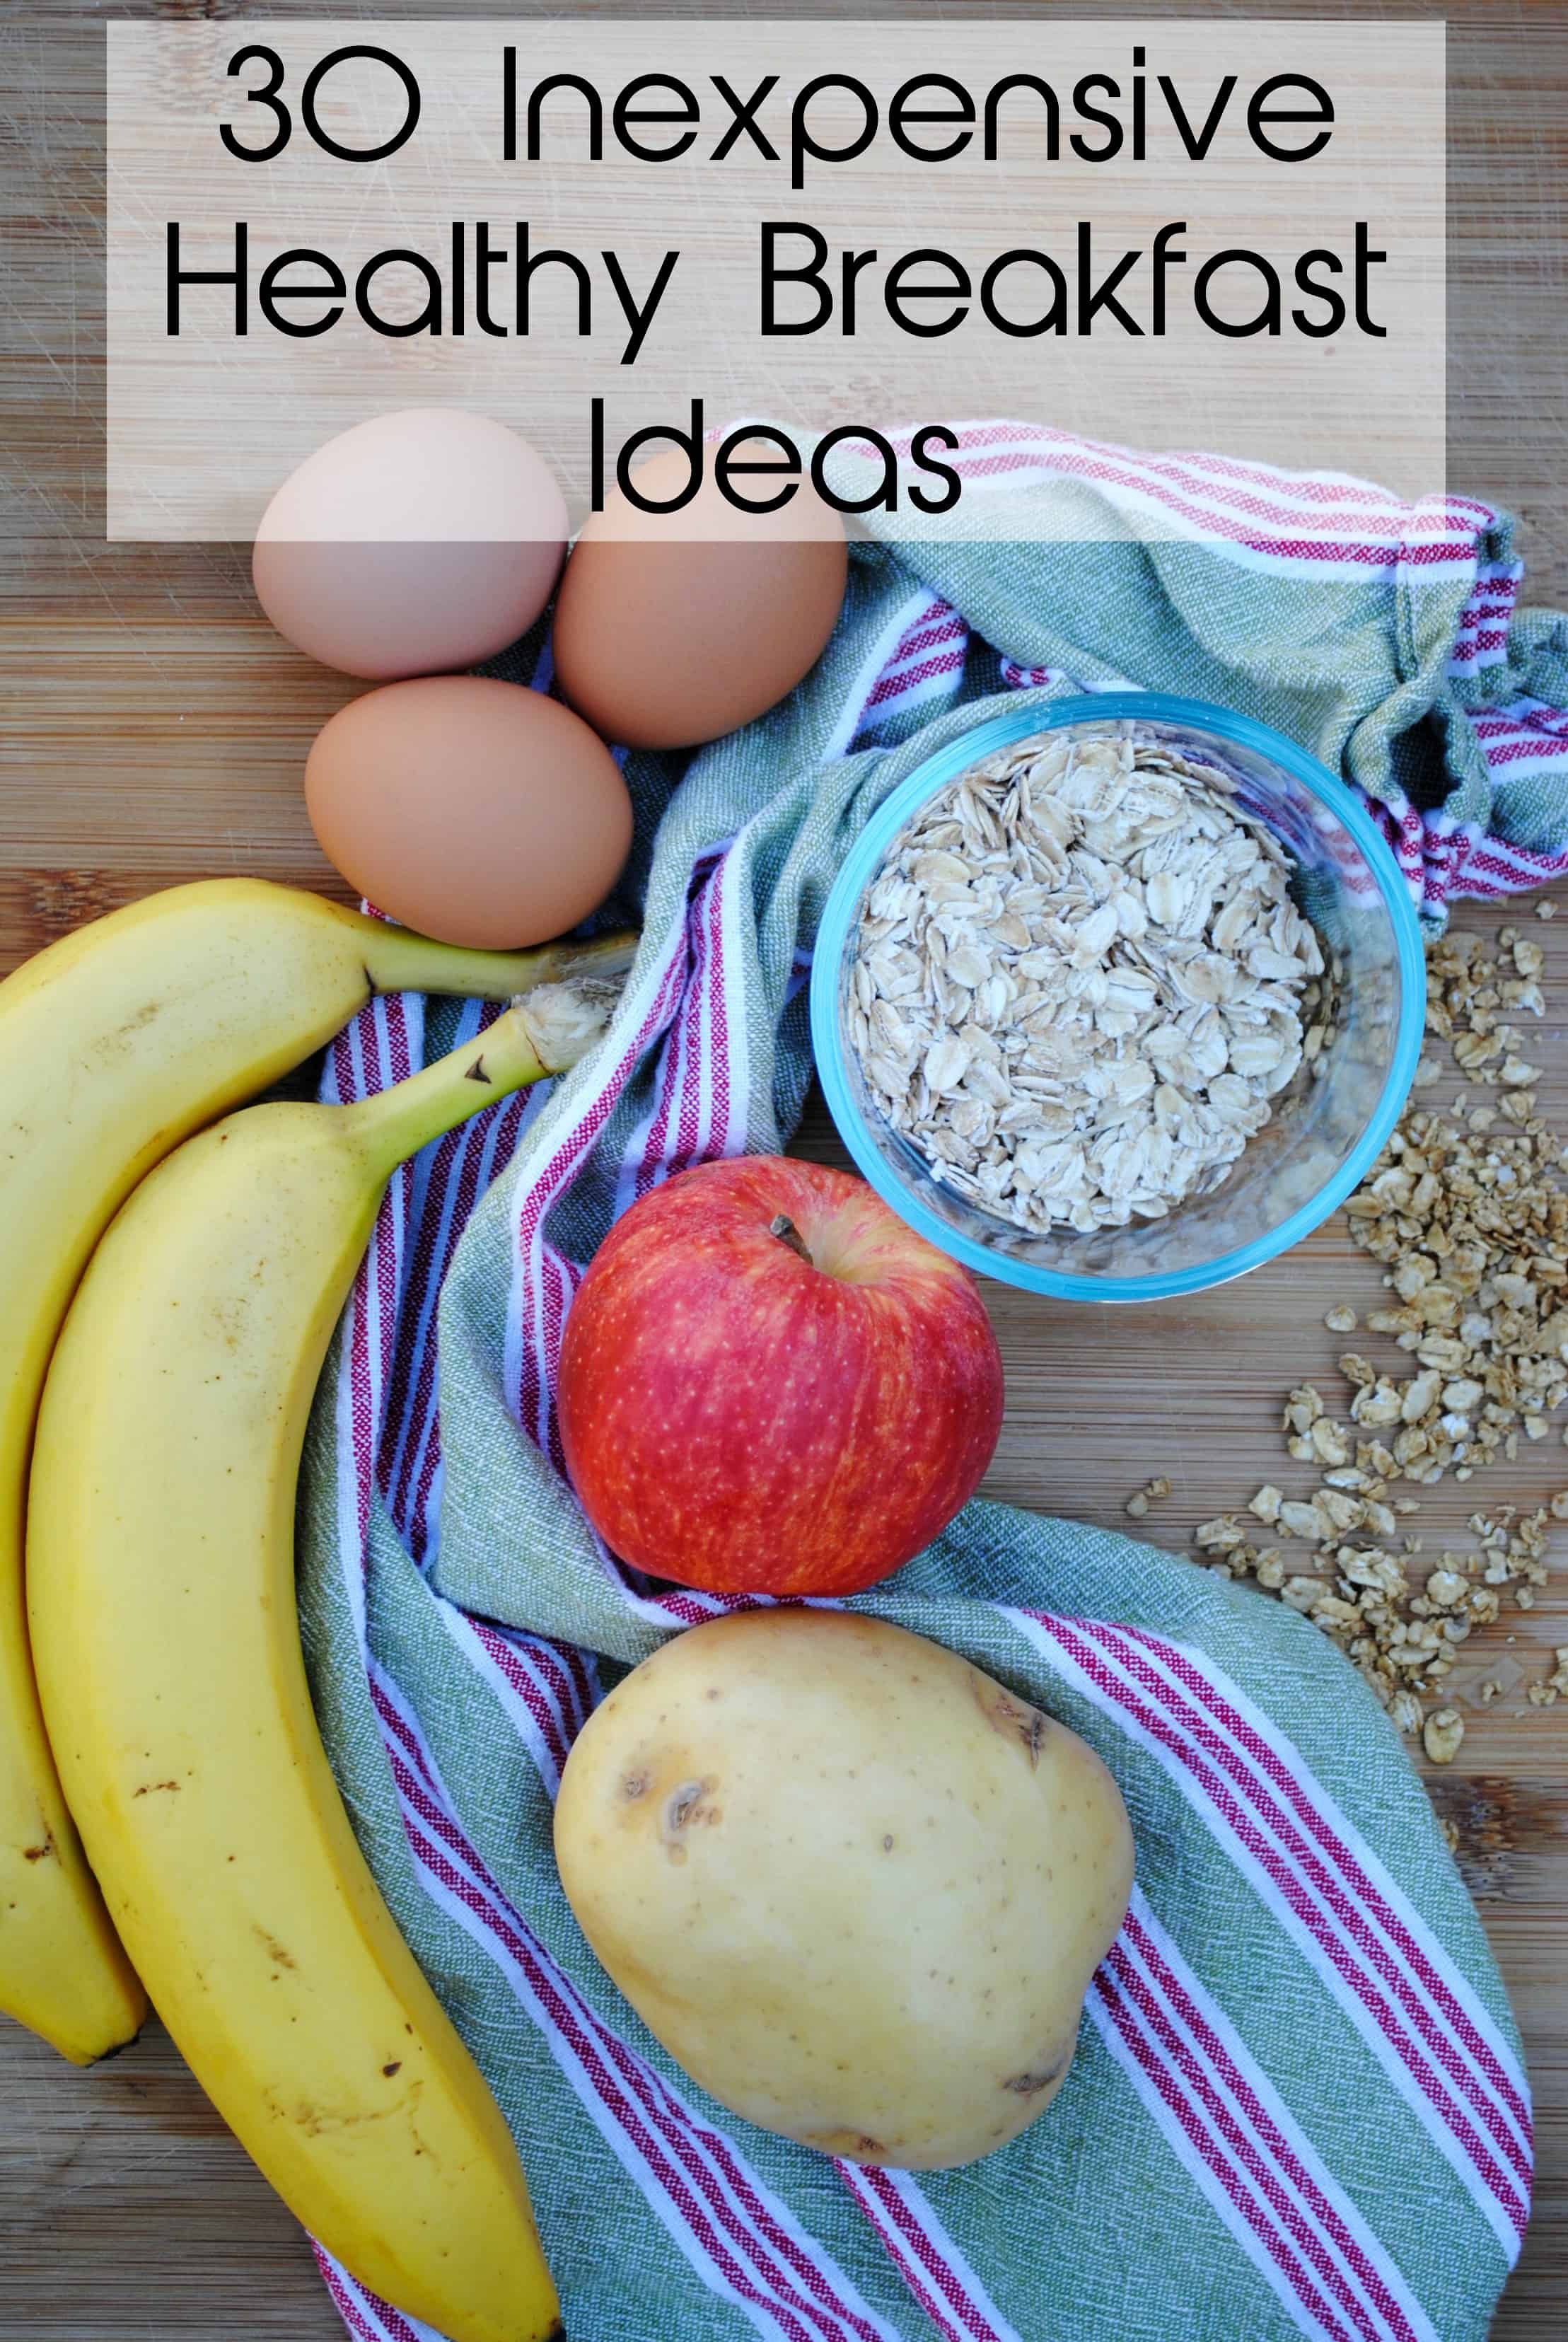 30 Inexpensive Healthy Breakfast Ideas Eat Well Spend Smart